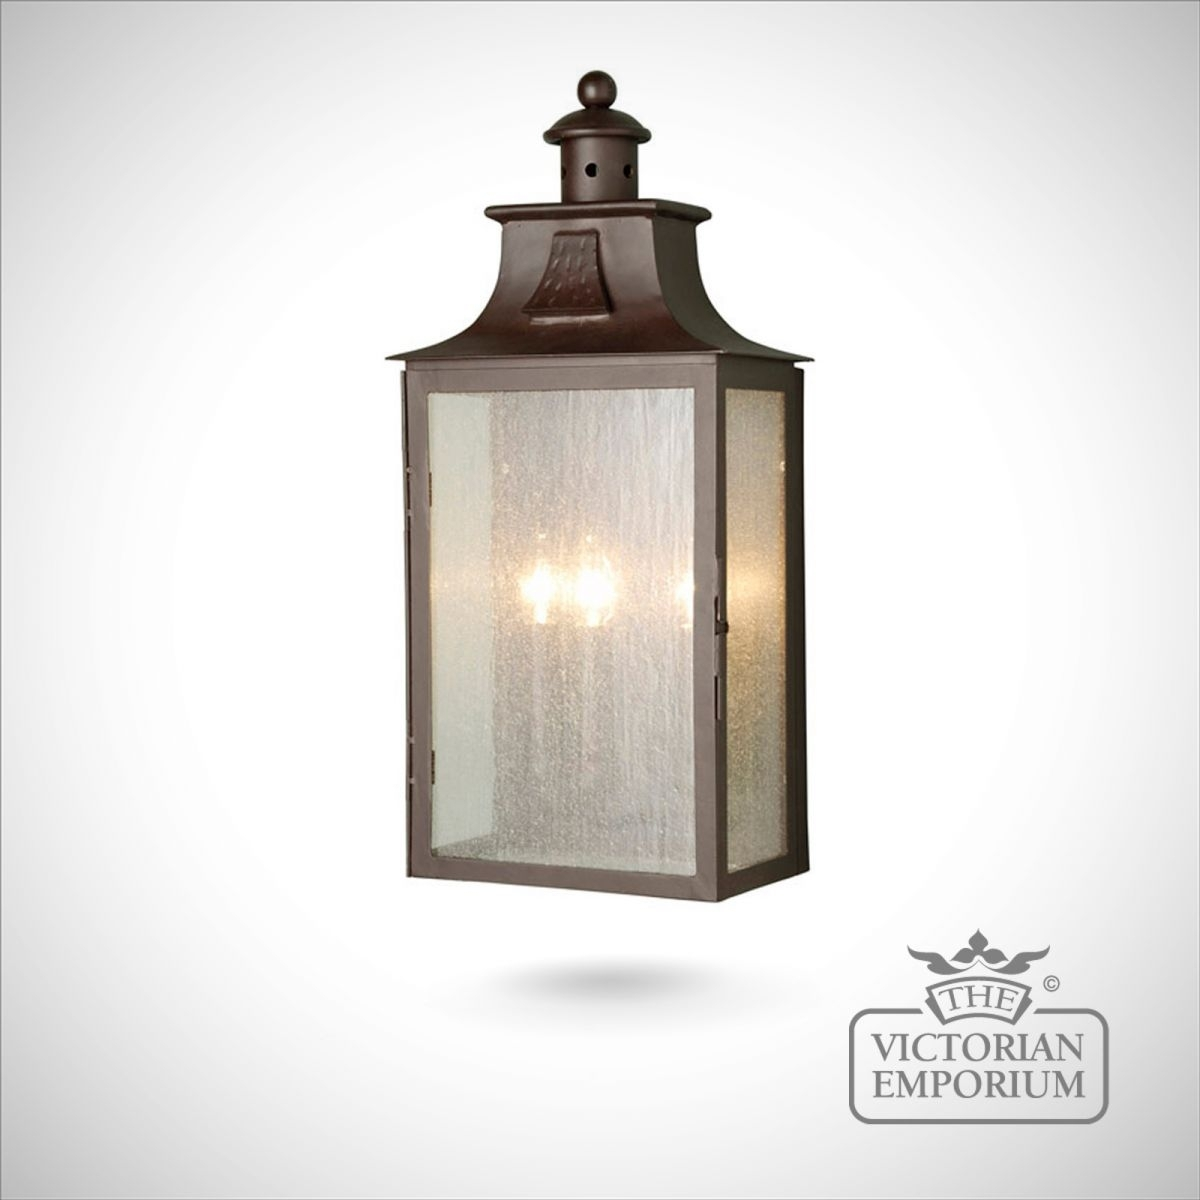 Balmoral Wall Lantern   Outdoor Wall Lights With Regard To Victorian Outdoor Lanterns (View 3 of 20)